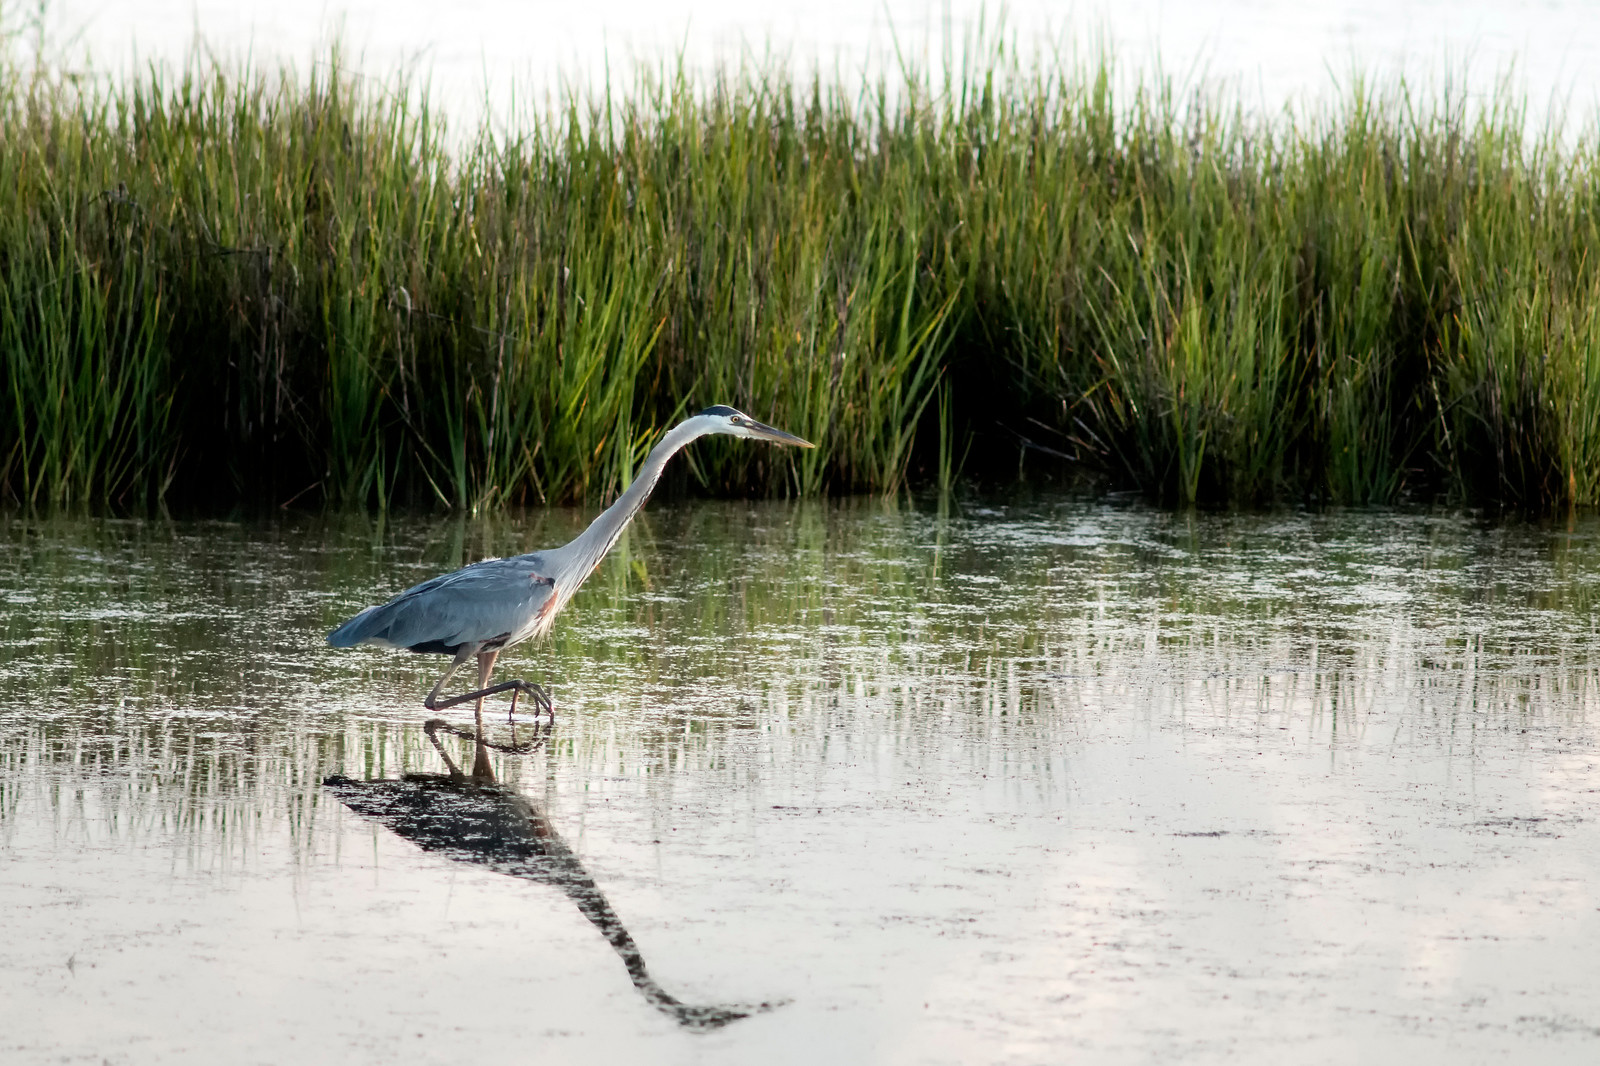 A blue heron walks through the shallow waters of the lake at Huntington Beach State Park in Murrells Inlet, SC on Friday, May 13, 2016. Copyright 2016 Jason Barnette